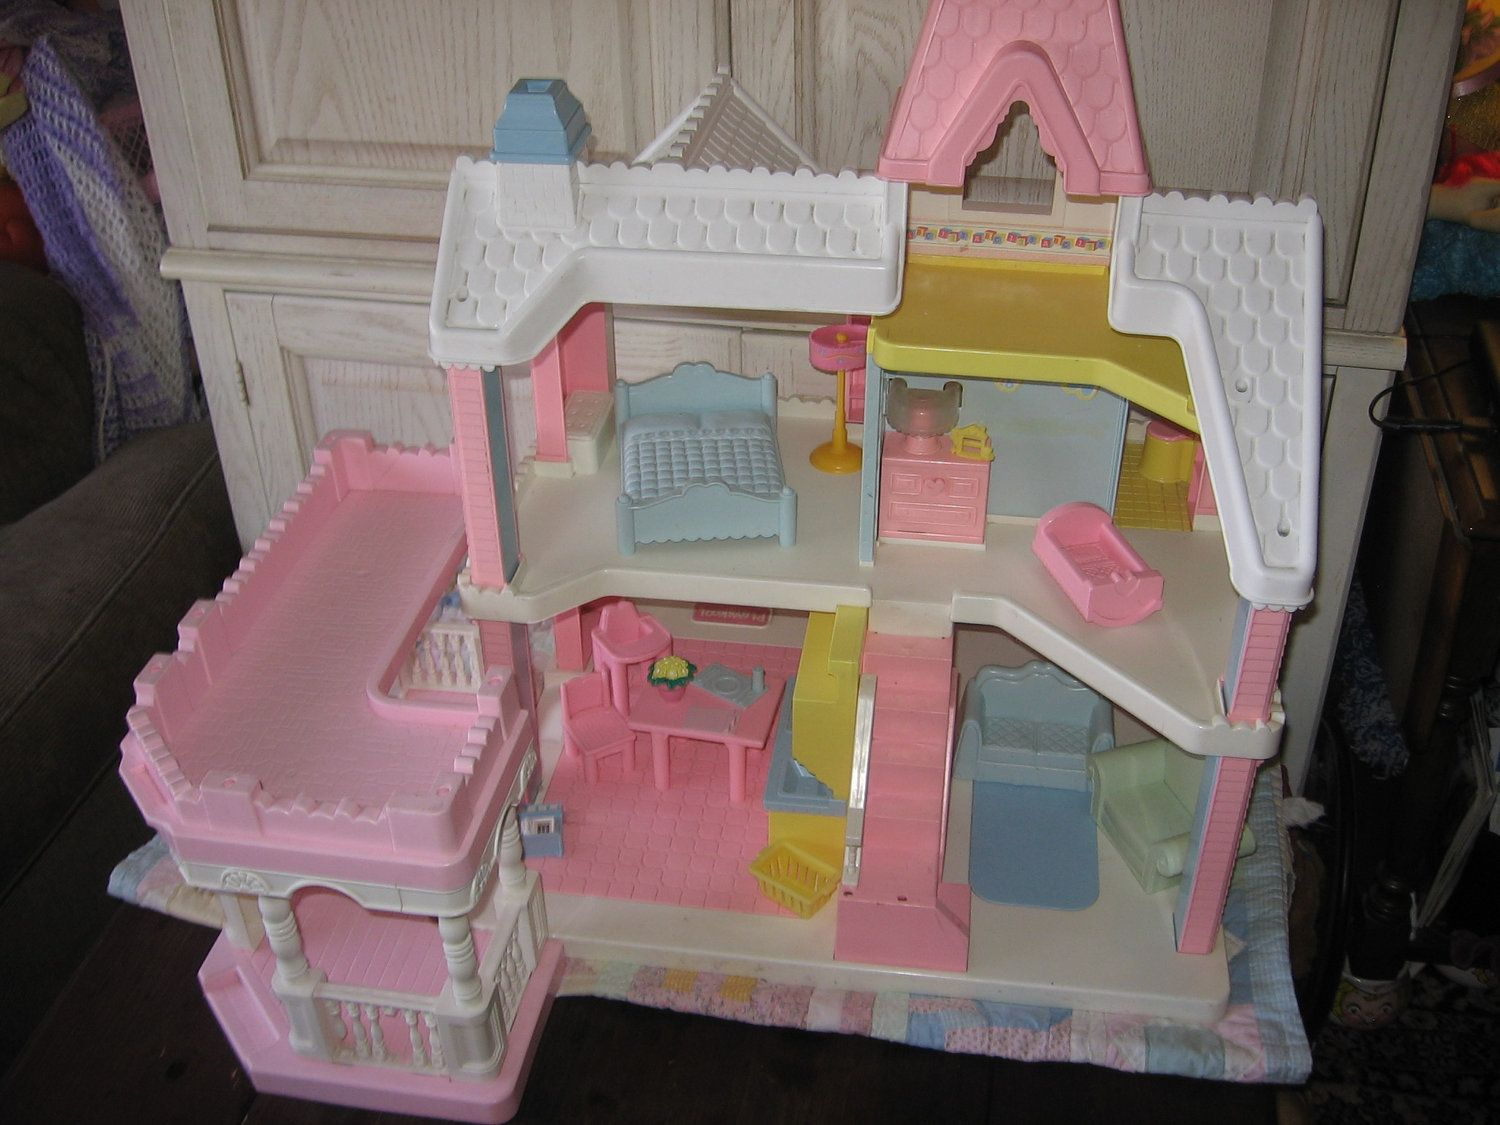 playskool doll house pink and white victorian doll house old playskool doll house pink and white victorian doll house restoration ideas